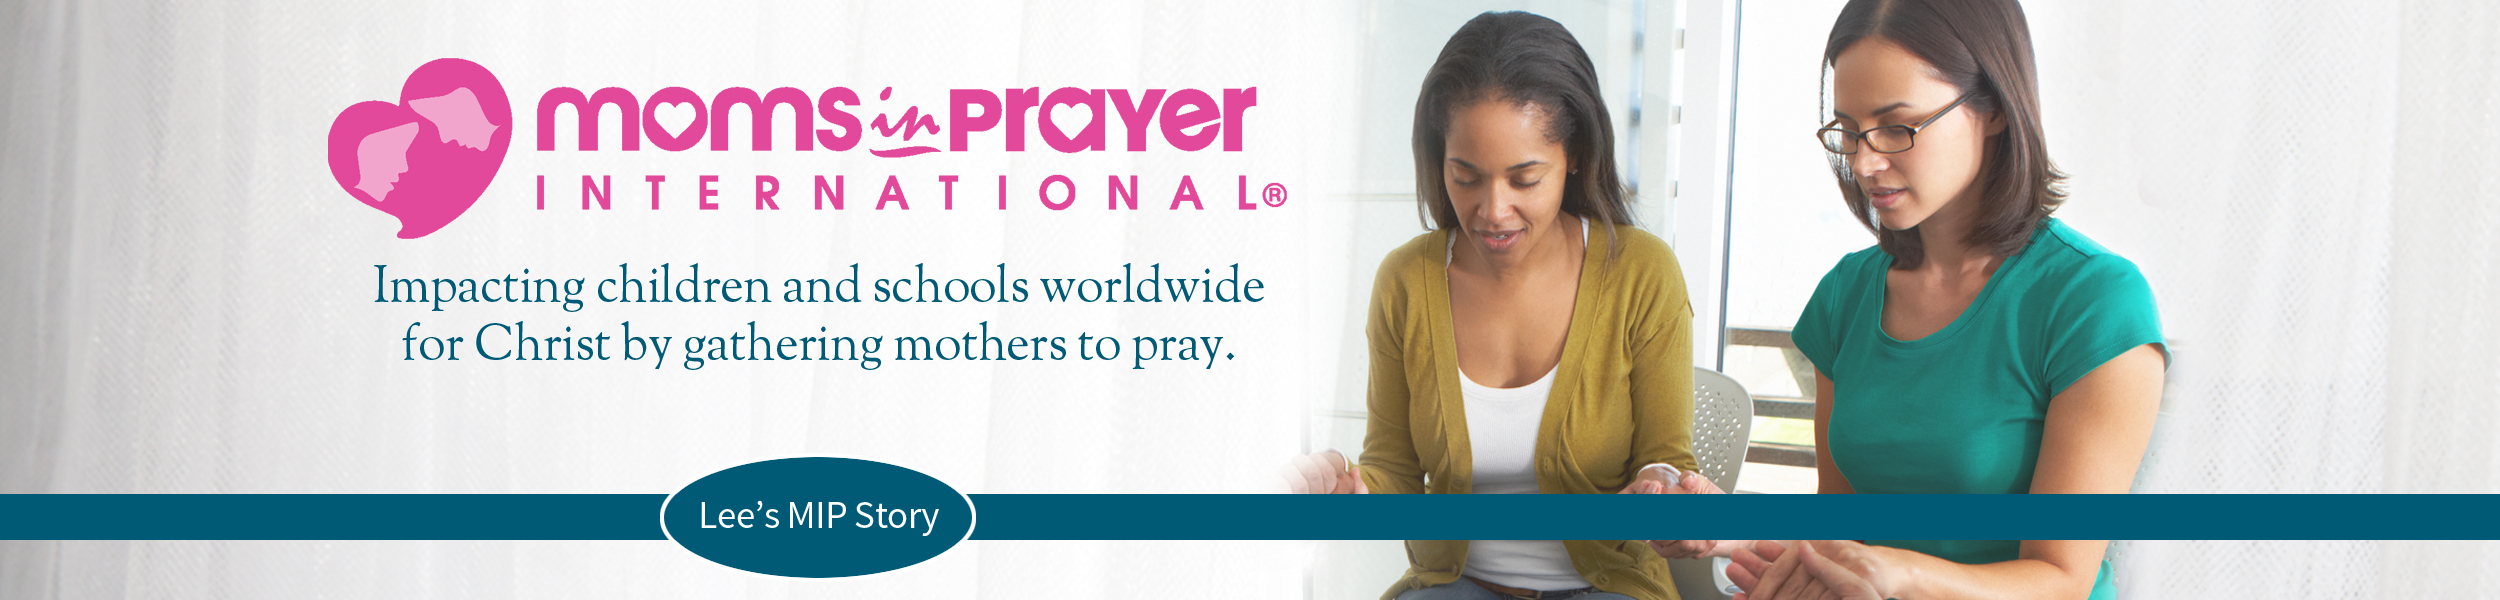 Moms in Prayer International